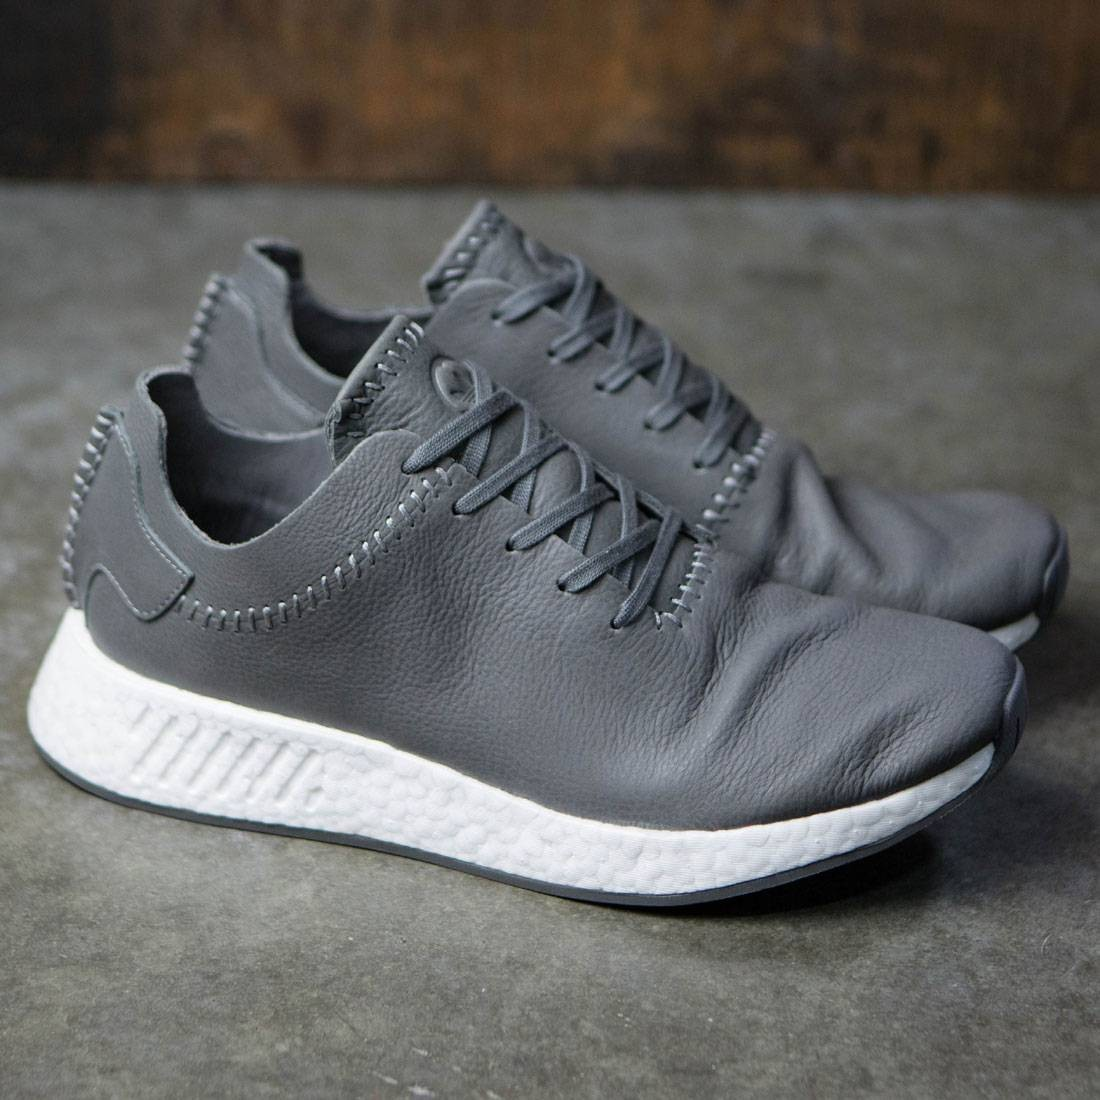 dd90091d5320 Adidas x Wings + Horns Men NMD R2 Leather (gray   ash   off white)